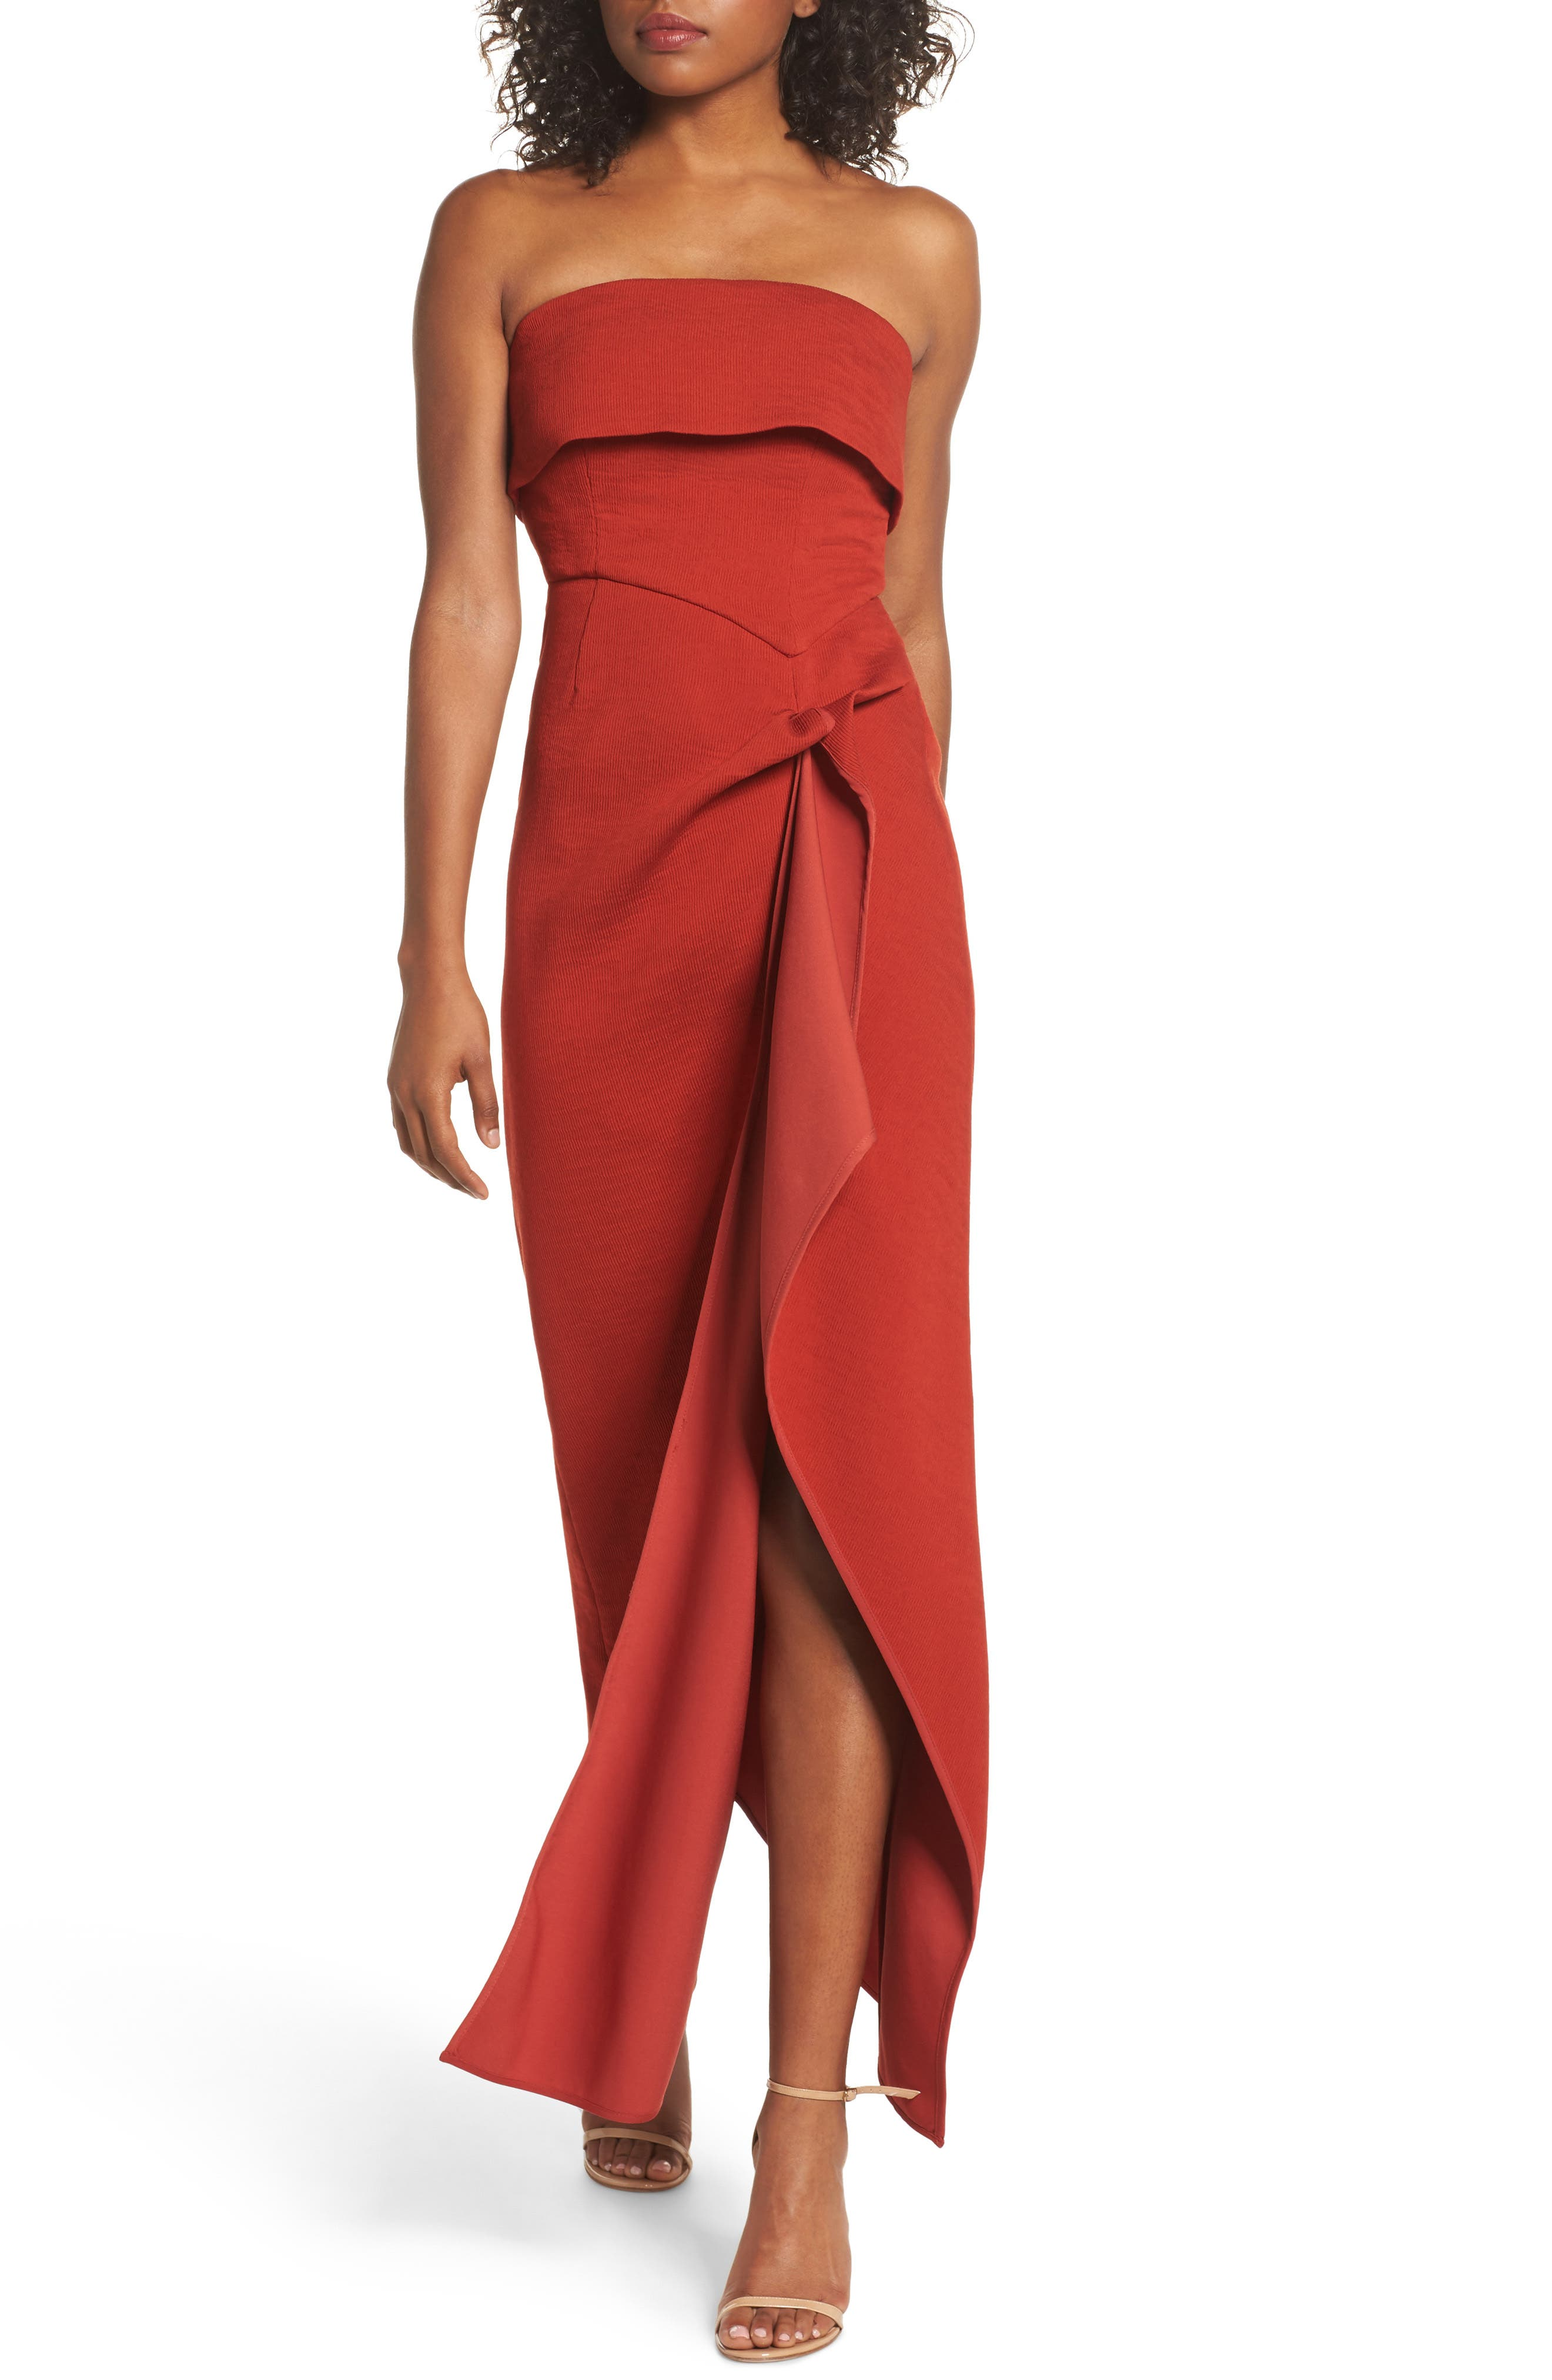 Fluidity Strapless Maxi Dress,                         Main,                         color, Red